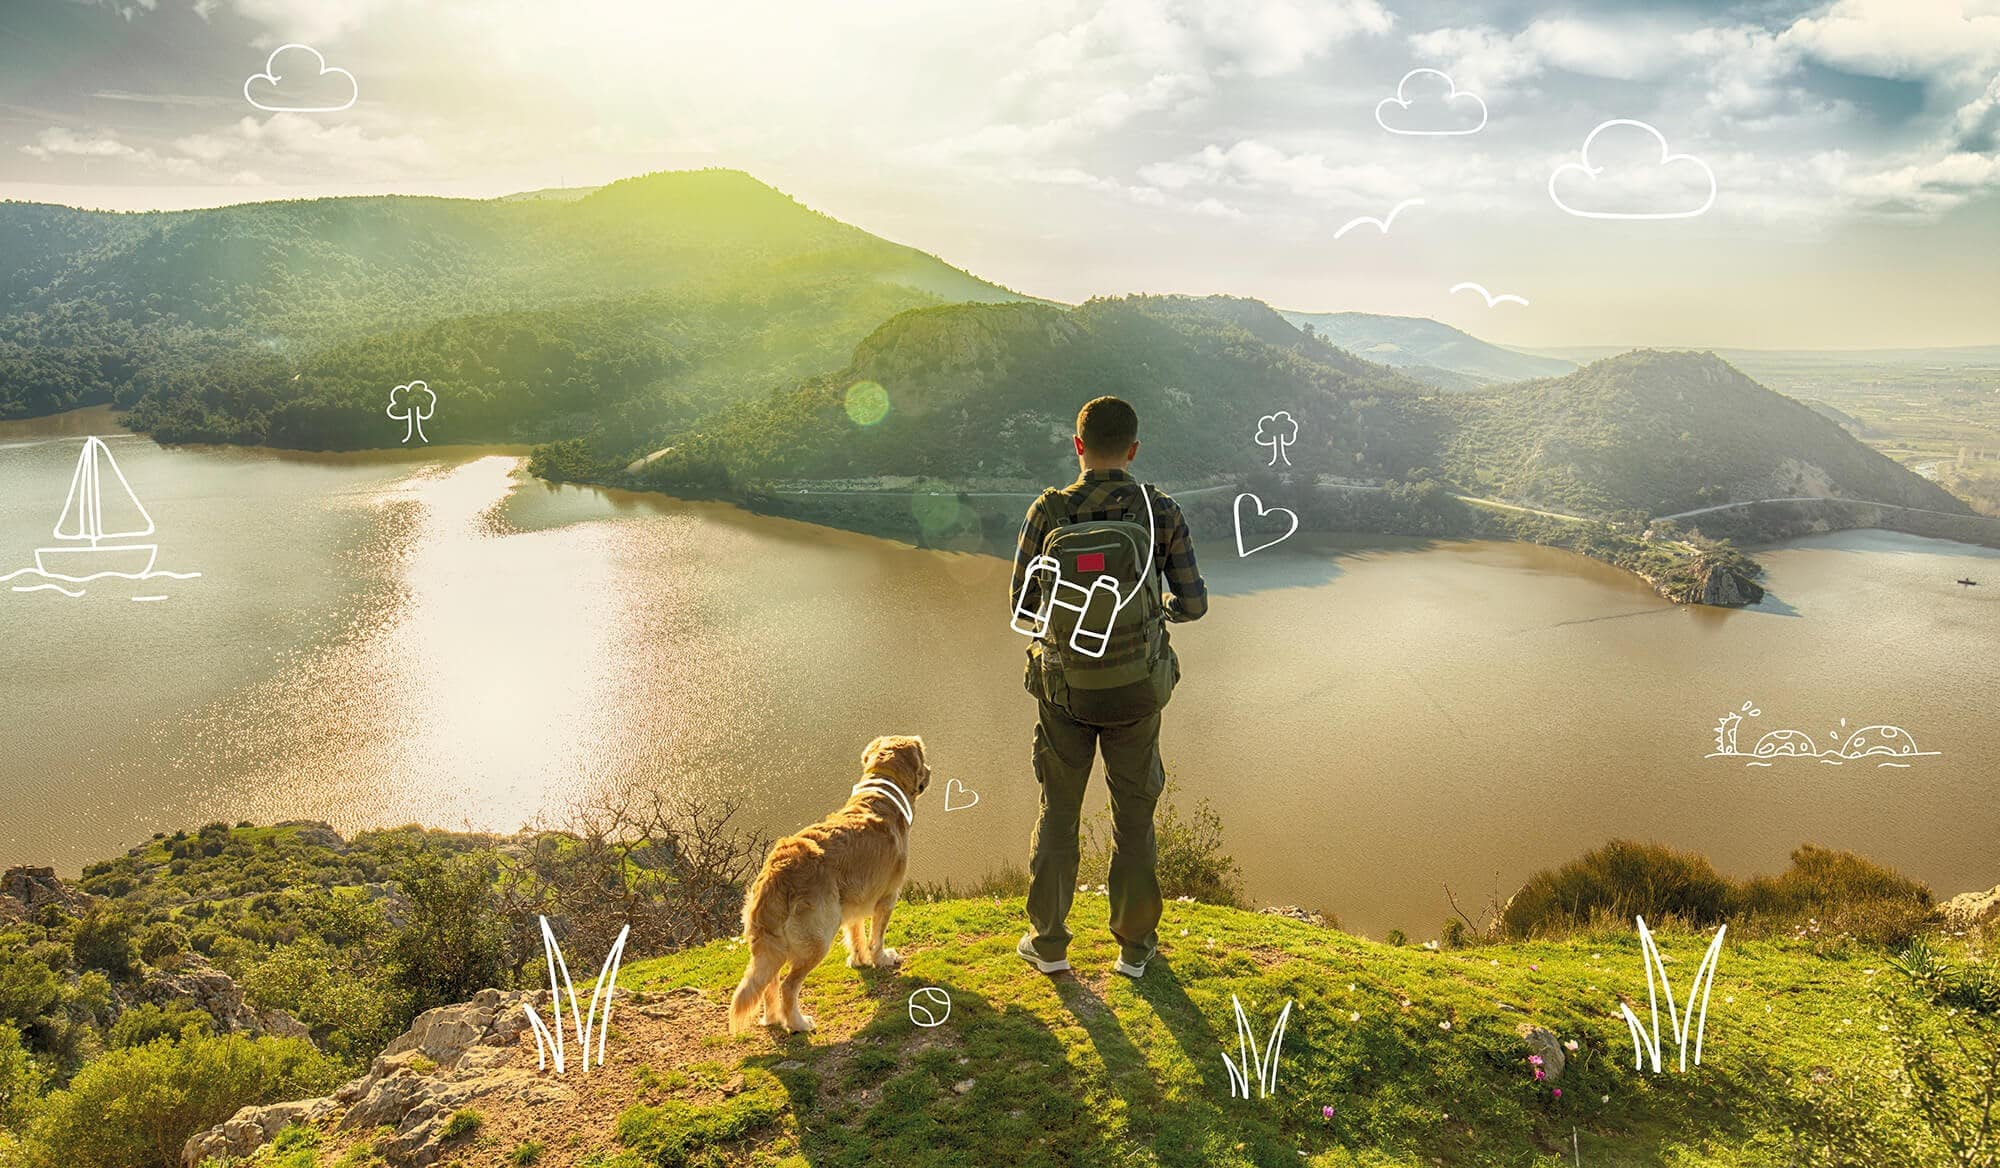 An adventure with your dog! Dog walks in England